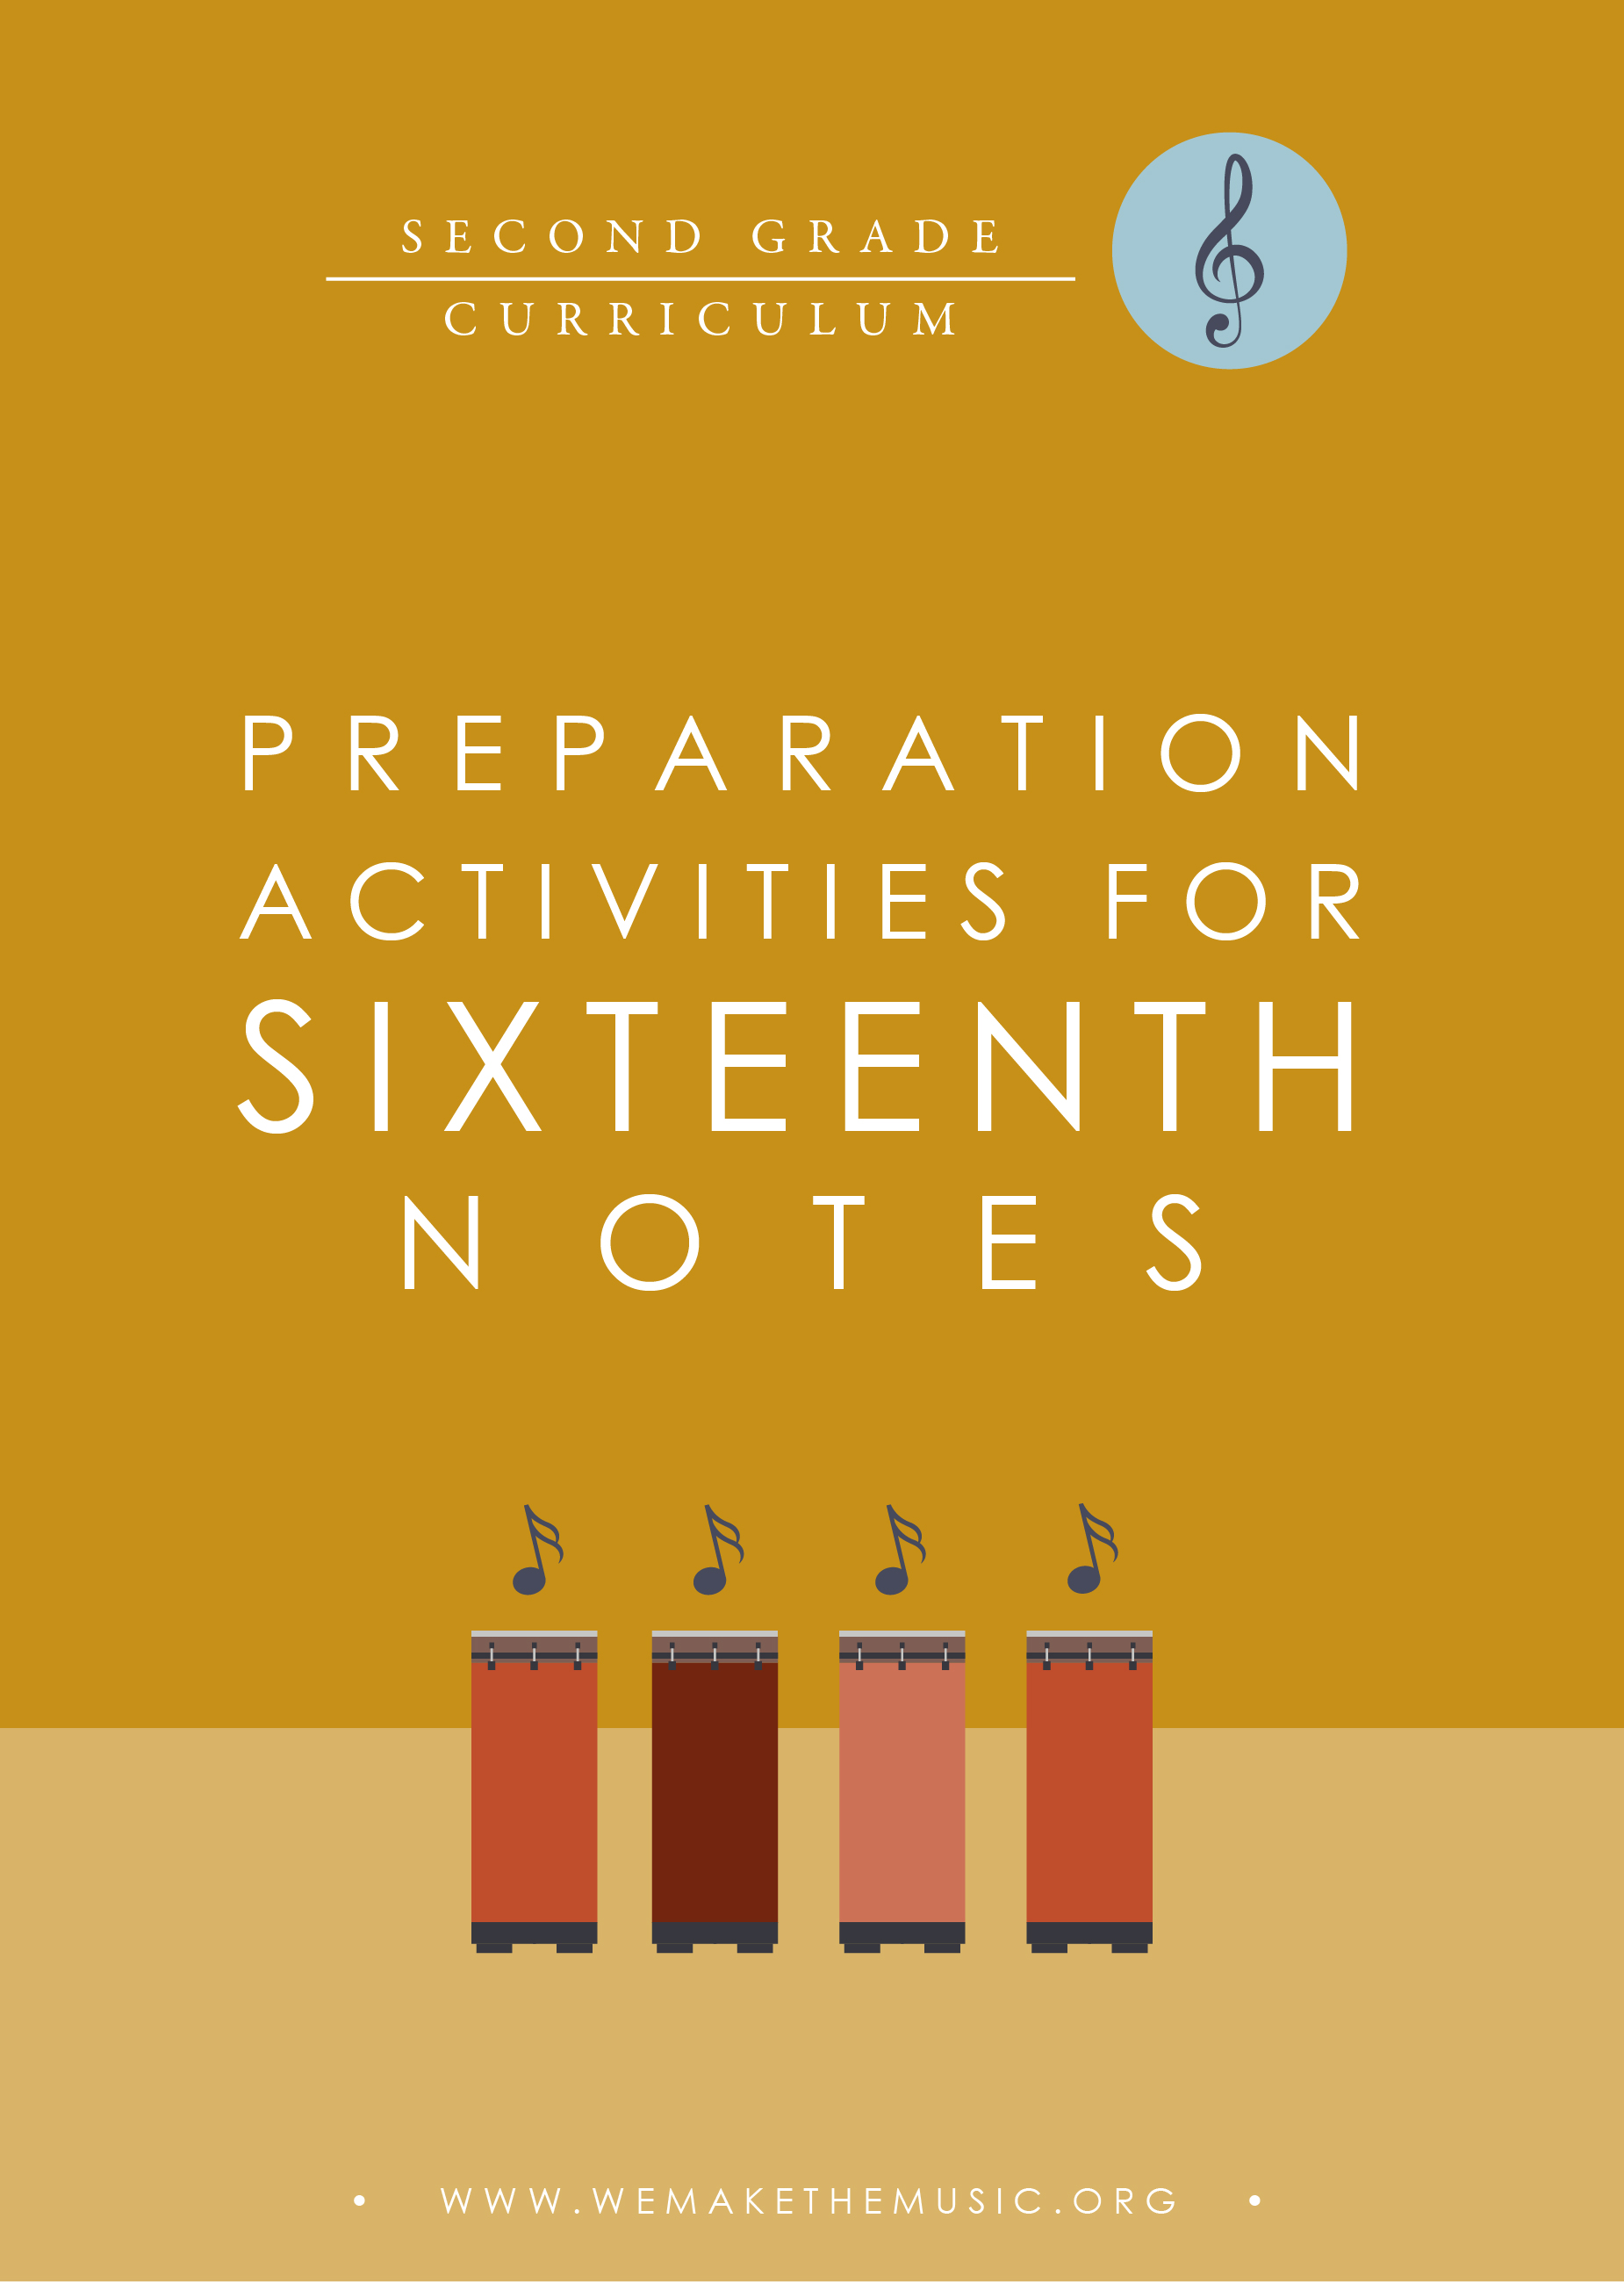 Preparation Activities for 16th Notes Elementary Music